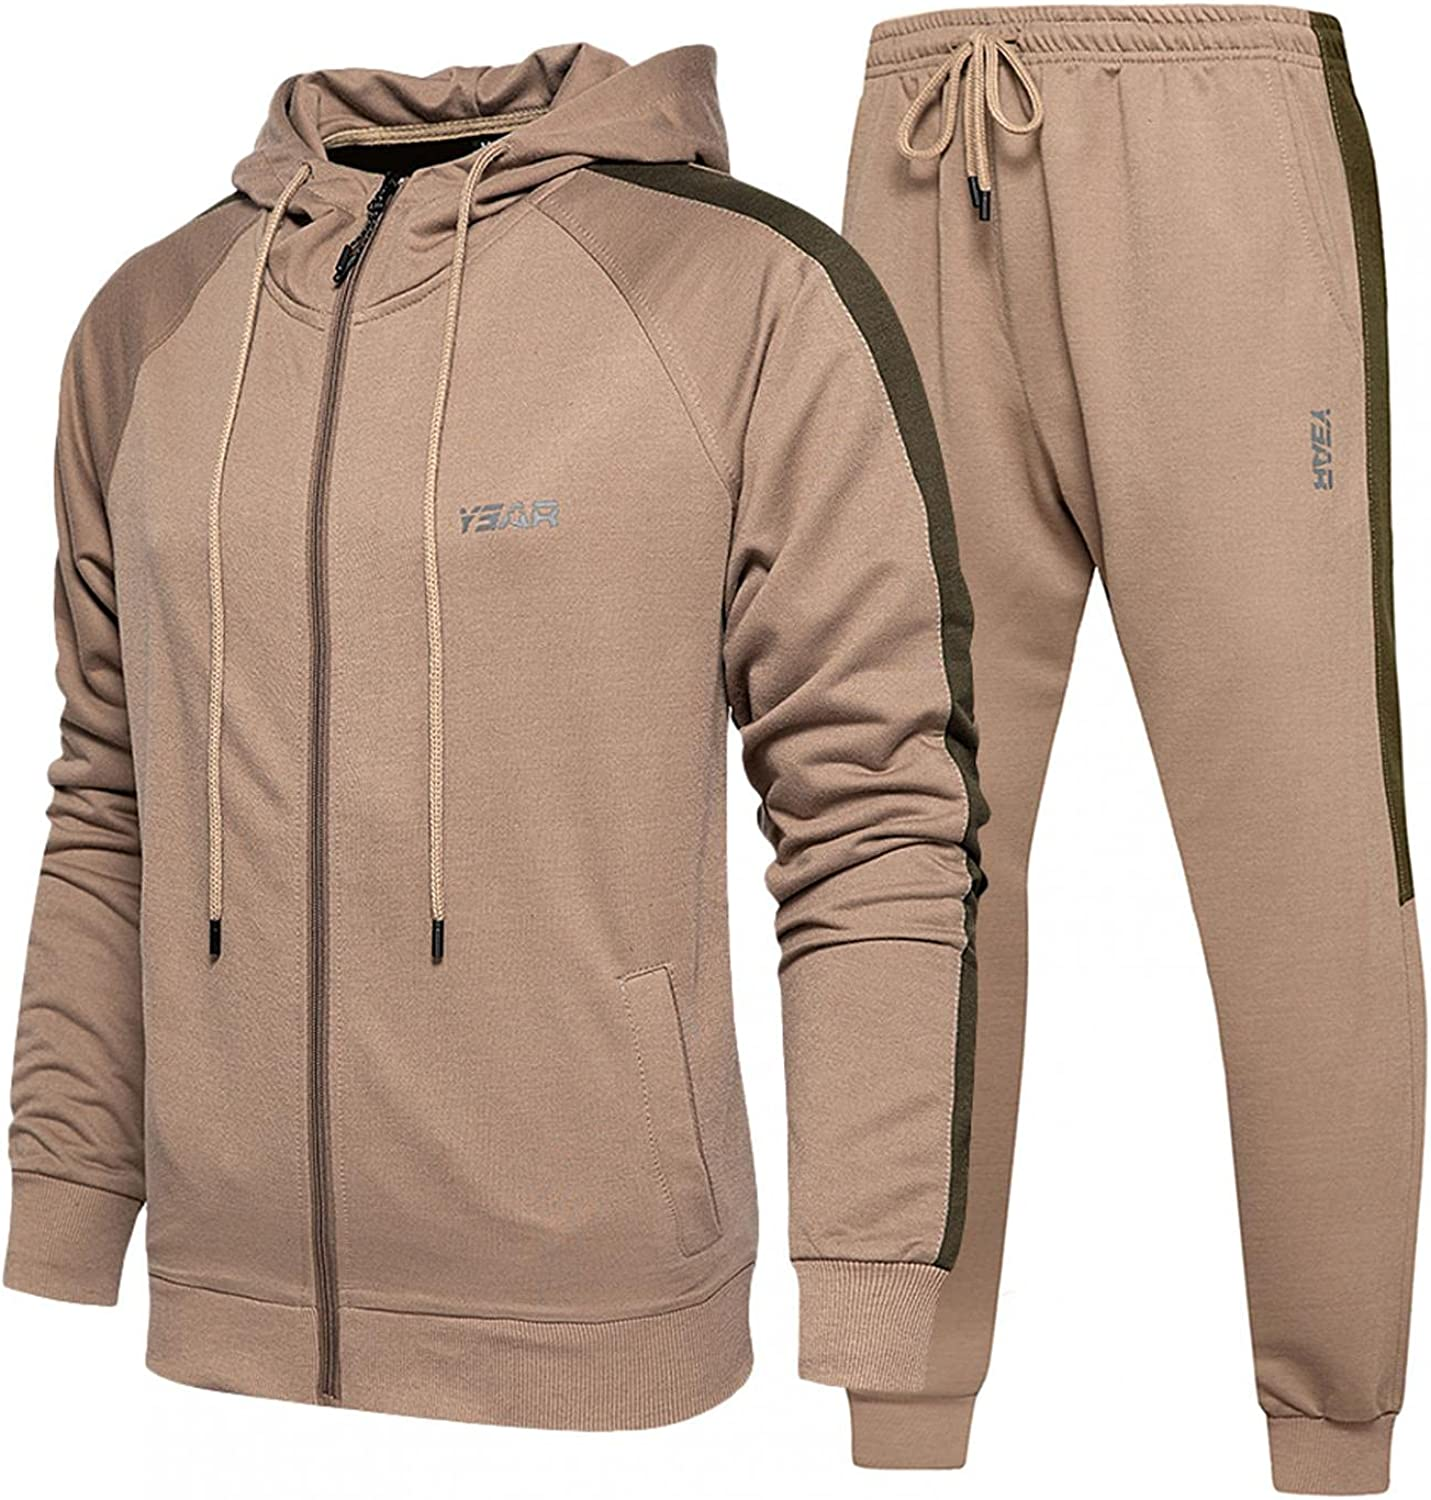 JSPOYOU Mens Athletic Jogging Tracksuits Long Sleeve Zip Up Hooded Sweatshirt and Sweatpant 2 Piece Outfit Casual Sportswear